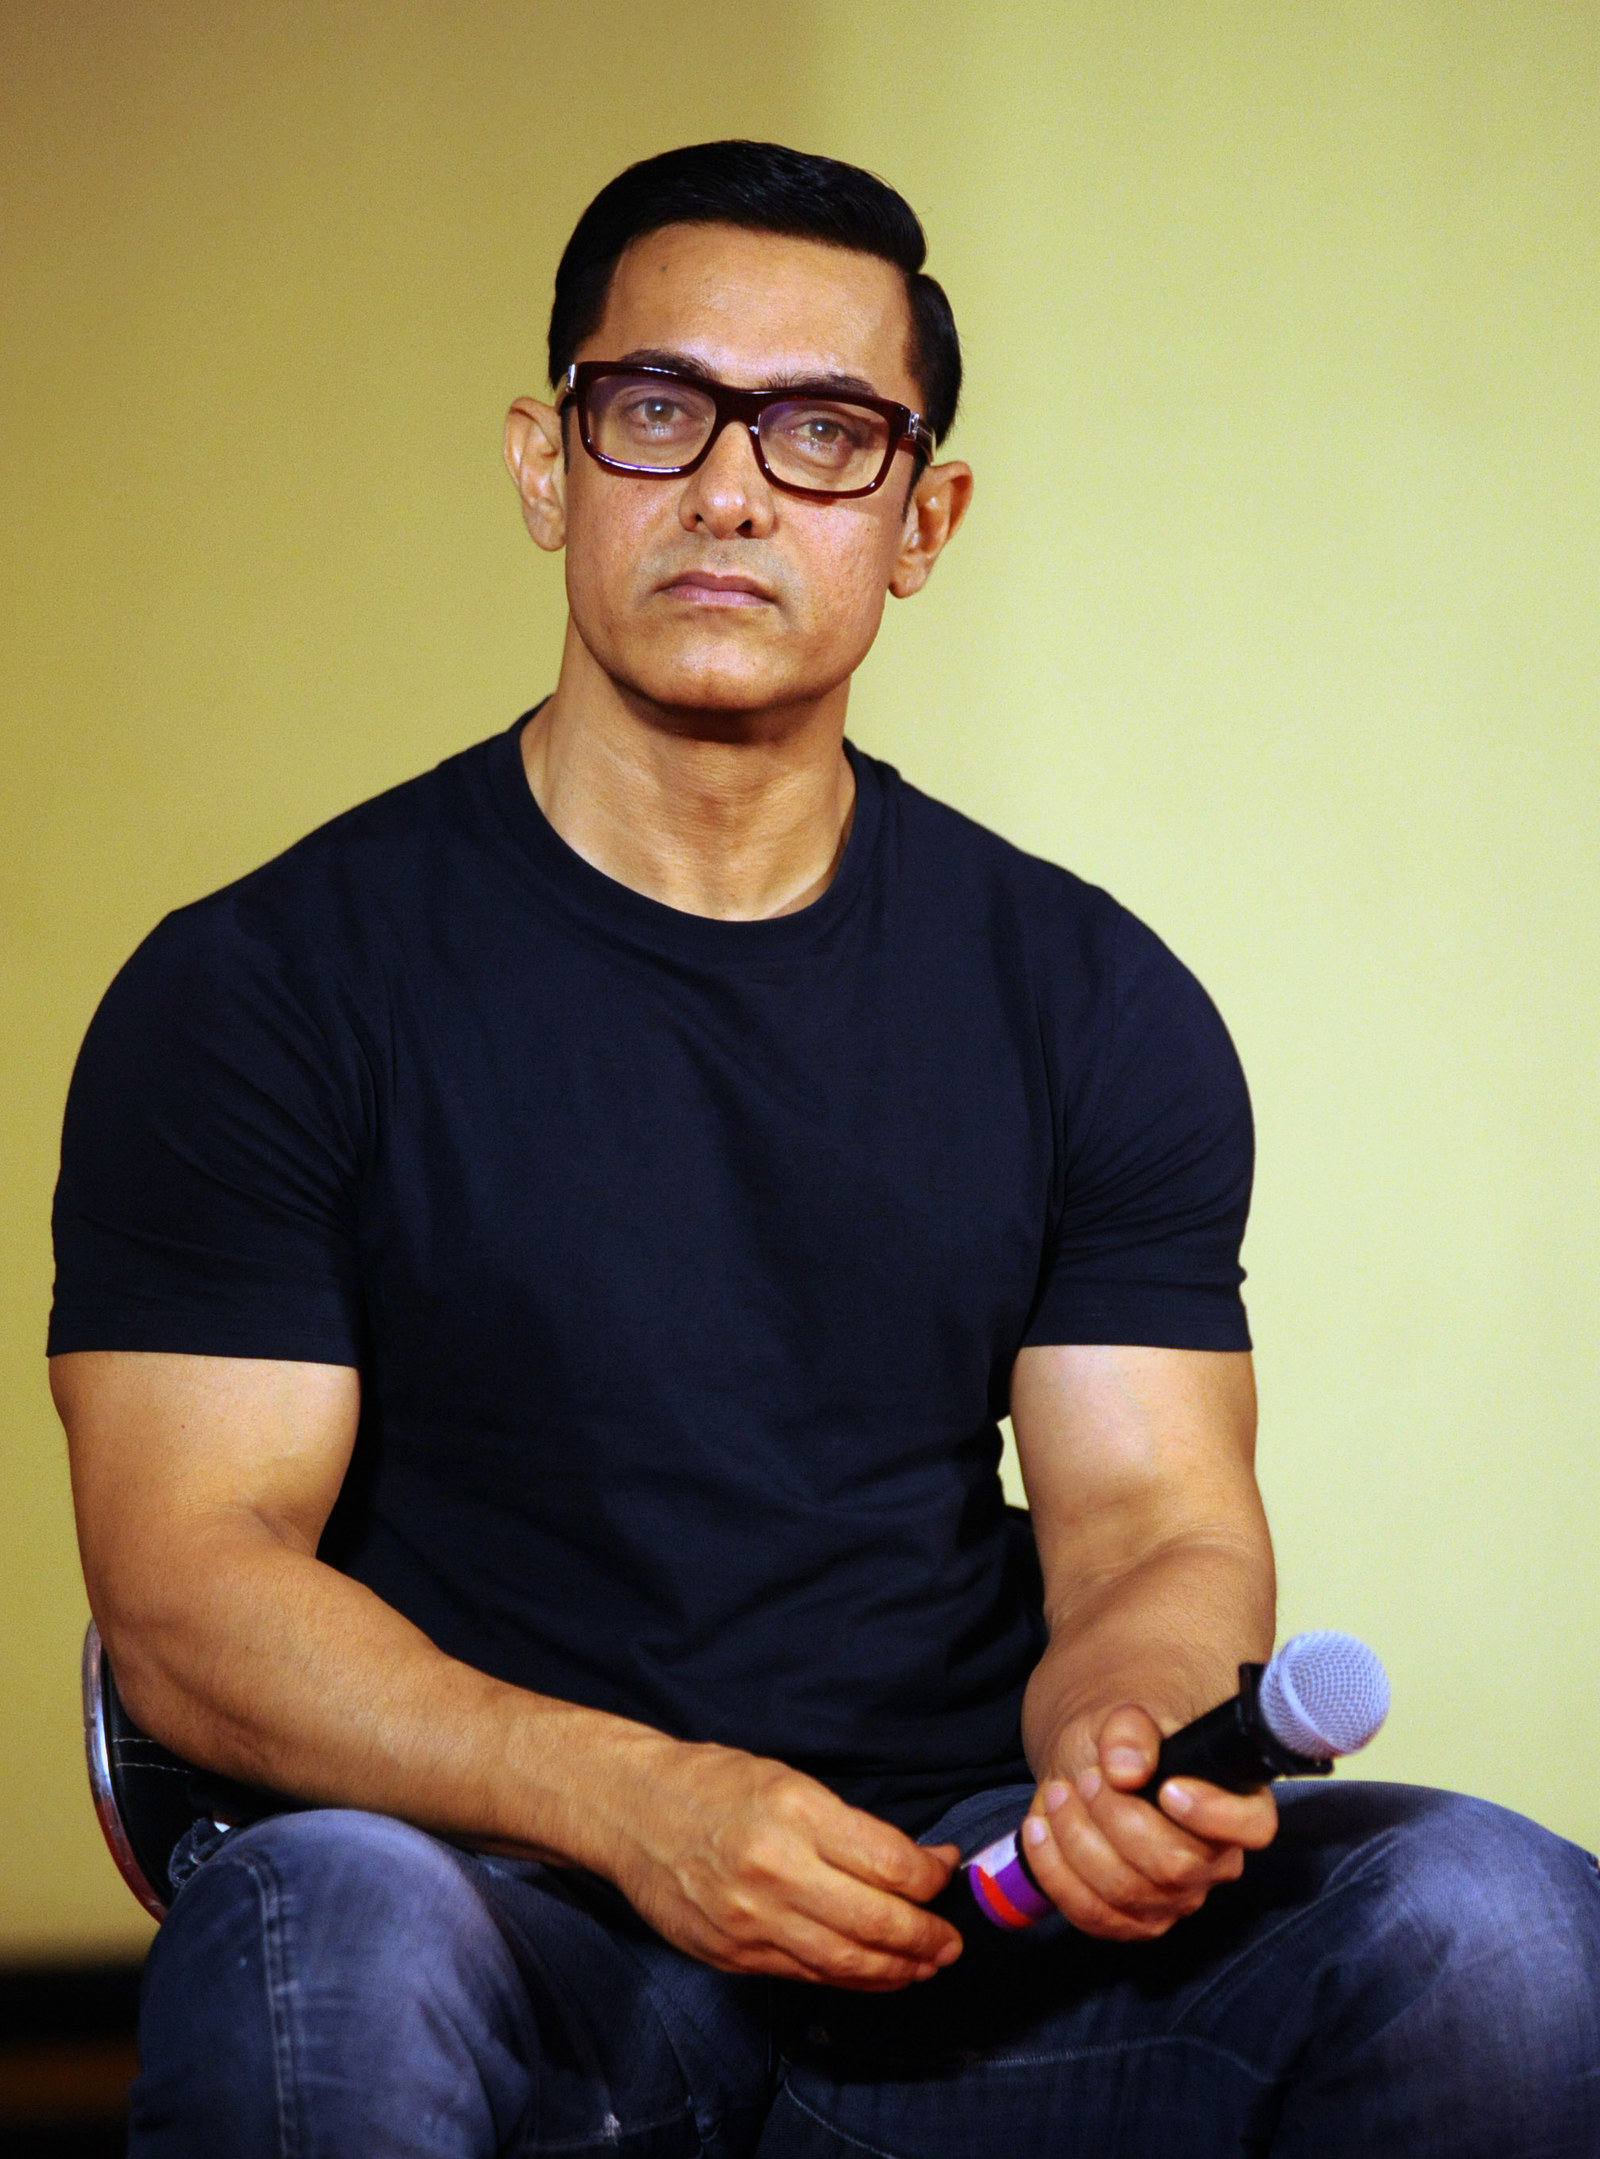 Aamir Khan Has This Insane Clark Kent Vibe Going On And It Is Confusing Me